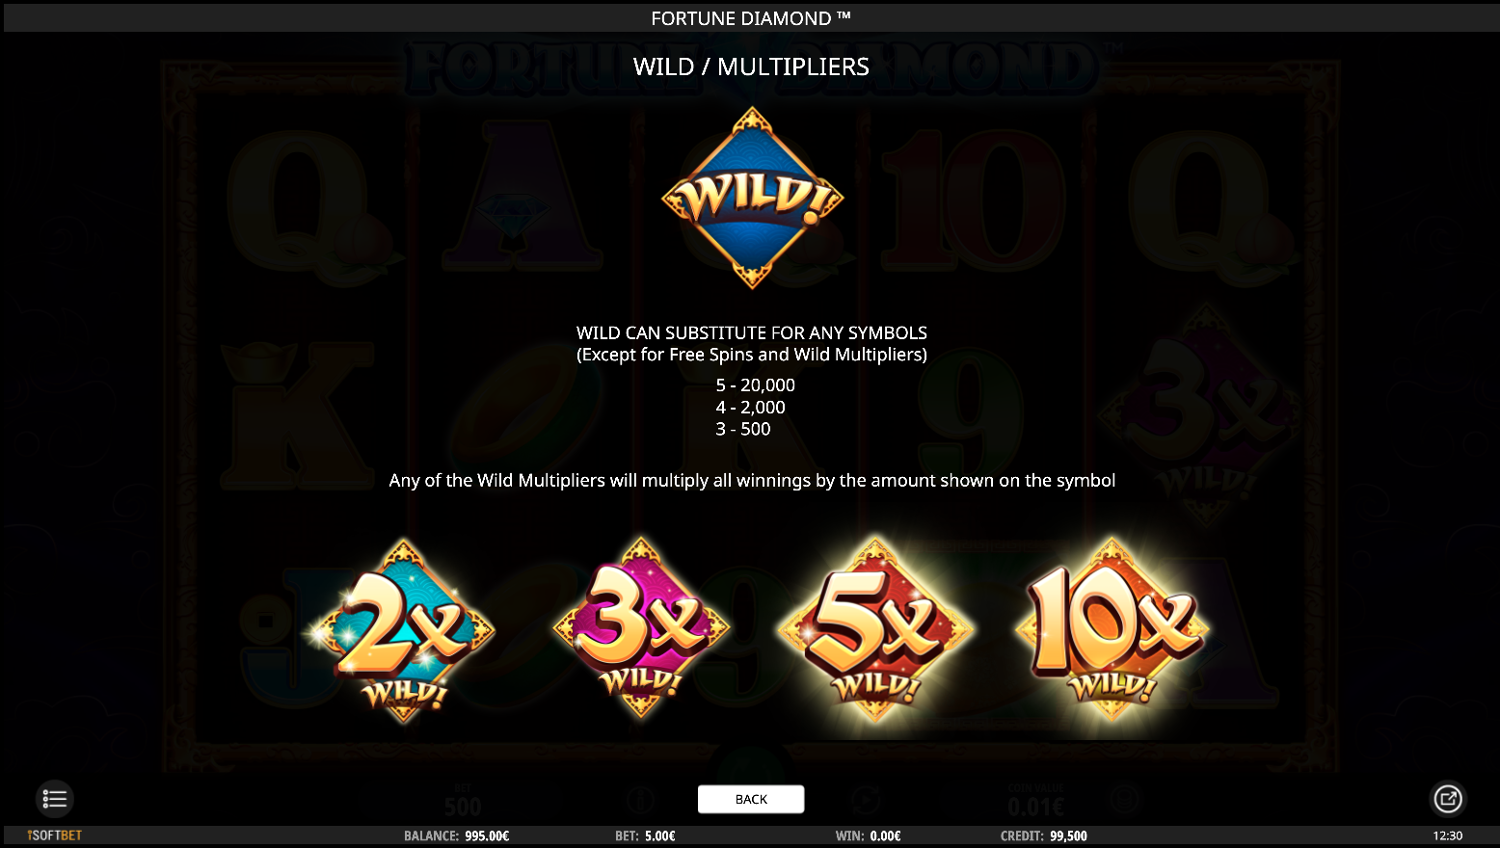 Fortune Diamond Wild multiplier symbol